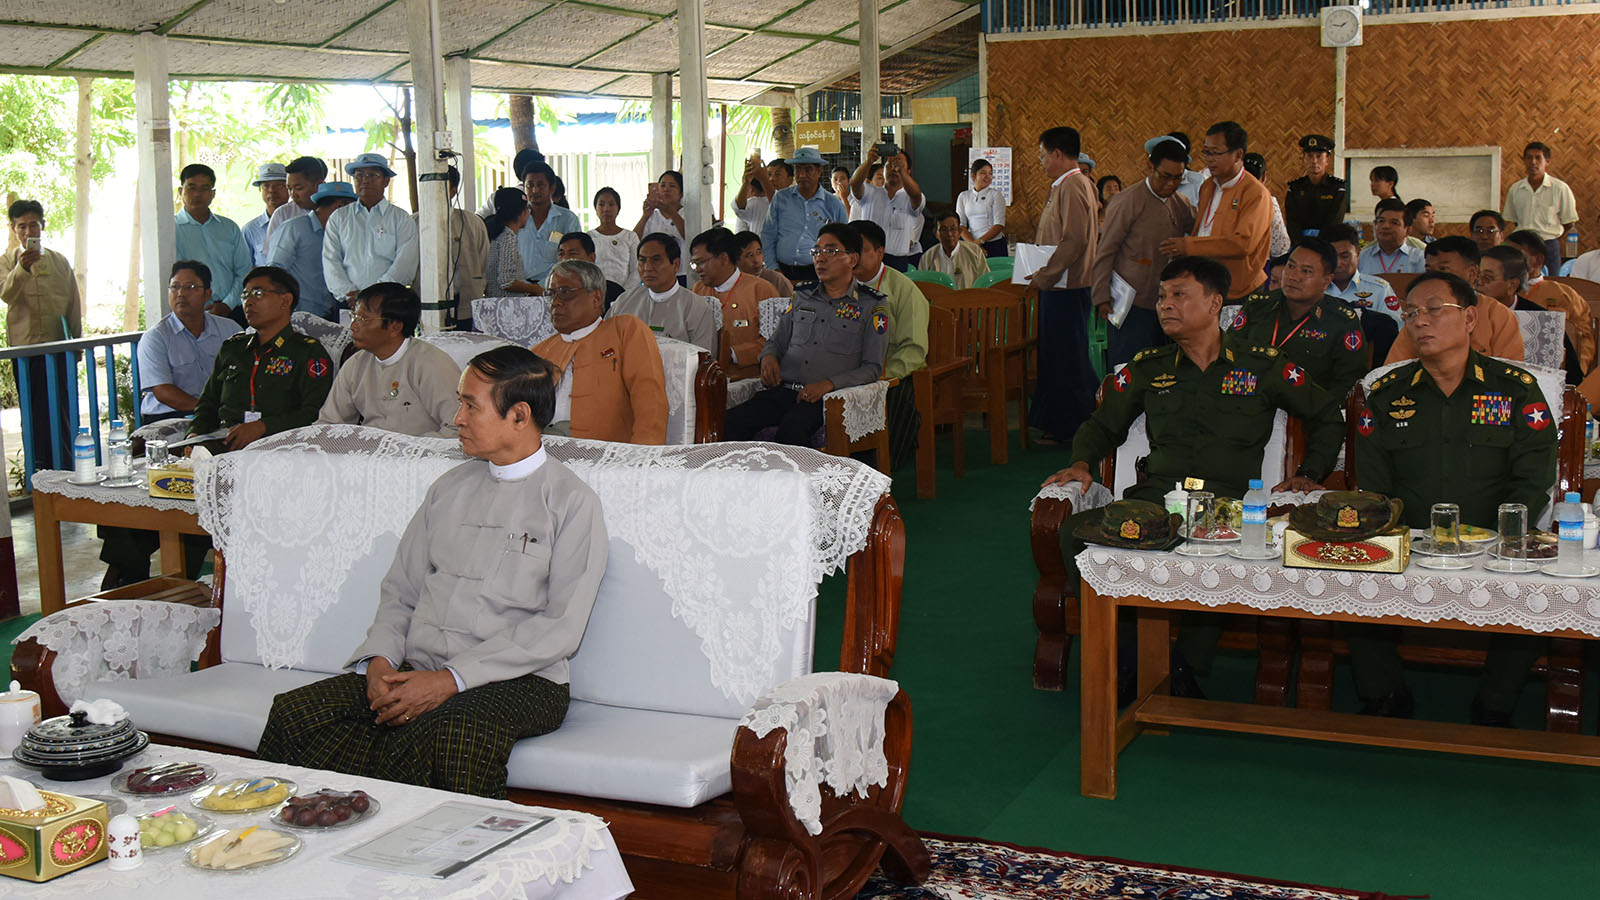 Deputy Director General U Tin Maung Aye Htoo reports on the Ayadaw (2) river water pumping project to President U Win Myint at Ayadaw Township Irrigation and Water Utilisation Management Department.Photo: Myanmar News Agency